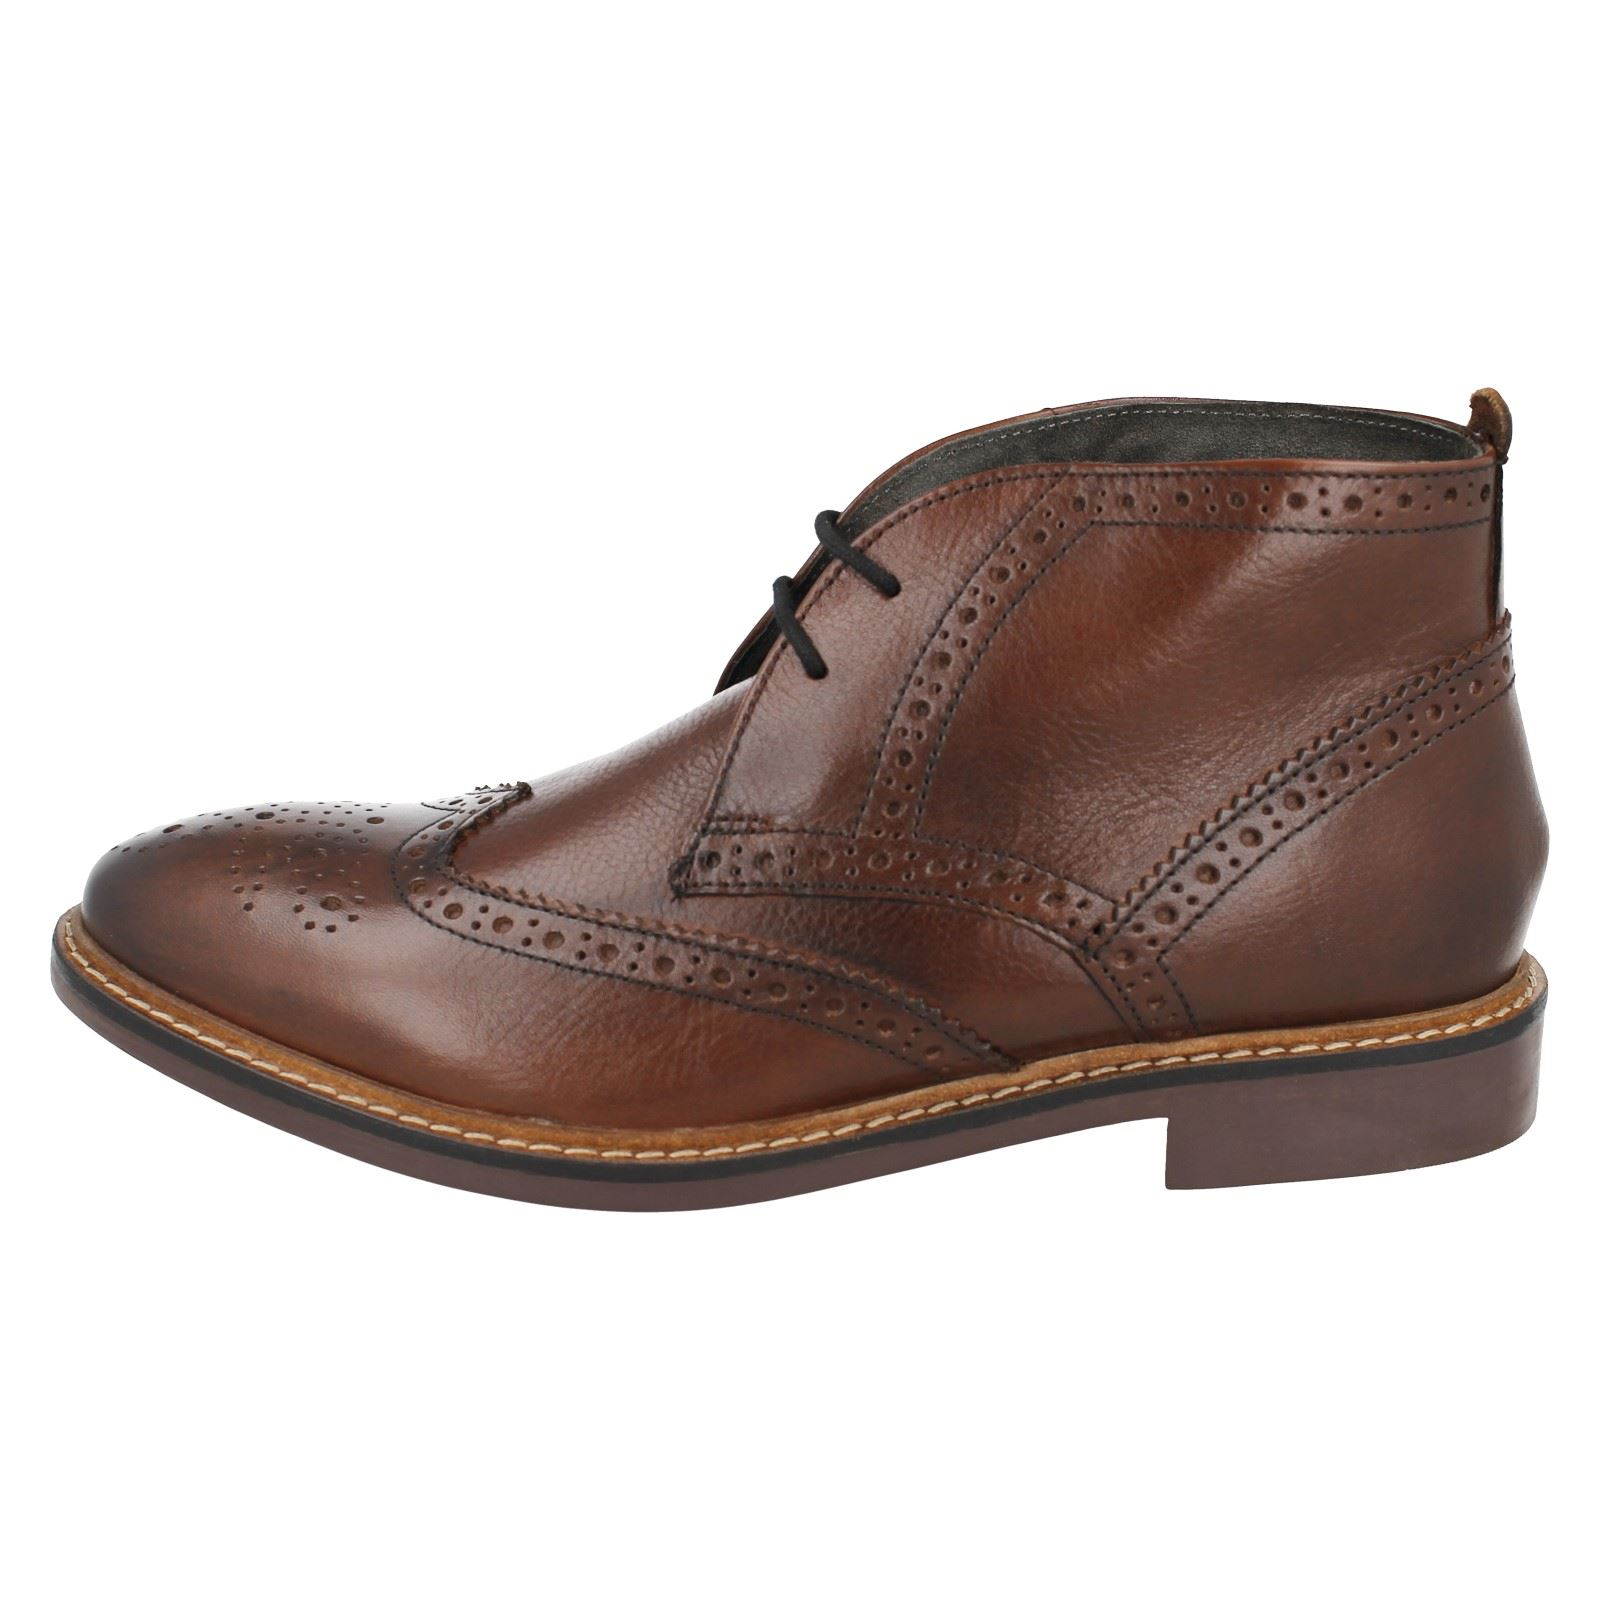 Mens Base Ankle London Leather Brougue Ankle Base Boots -The Style Trick 839ac0